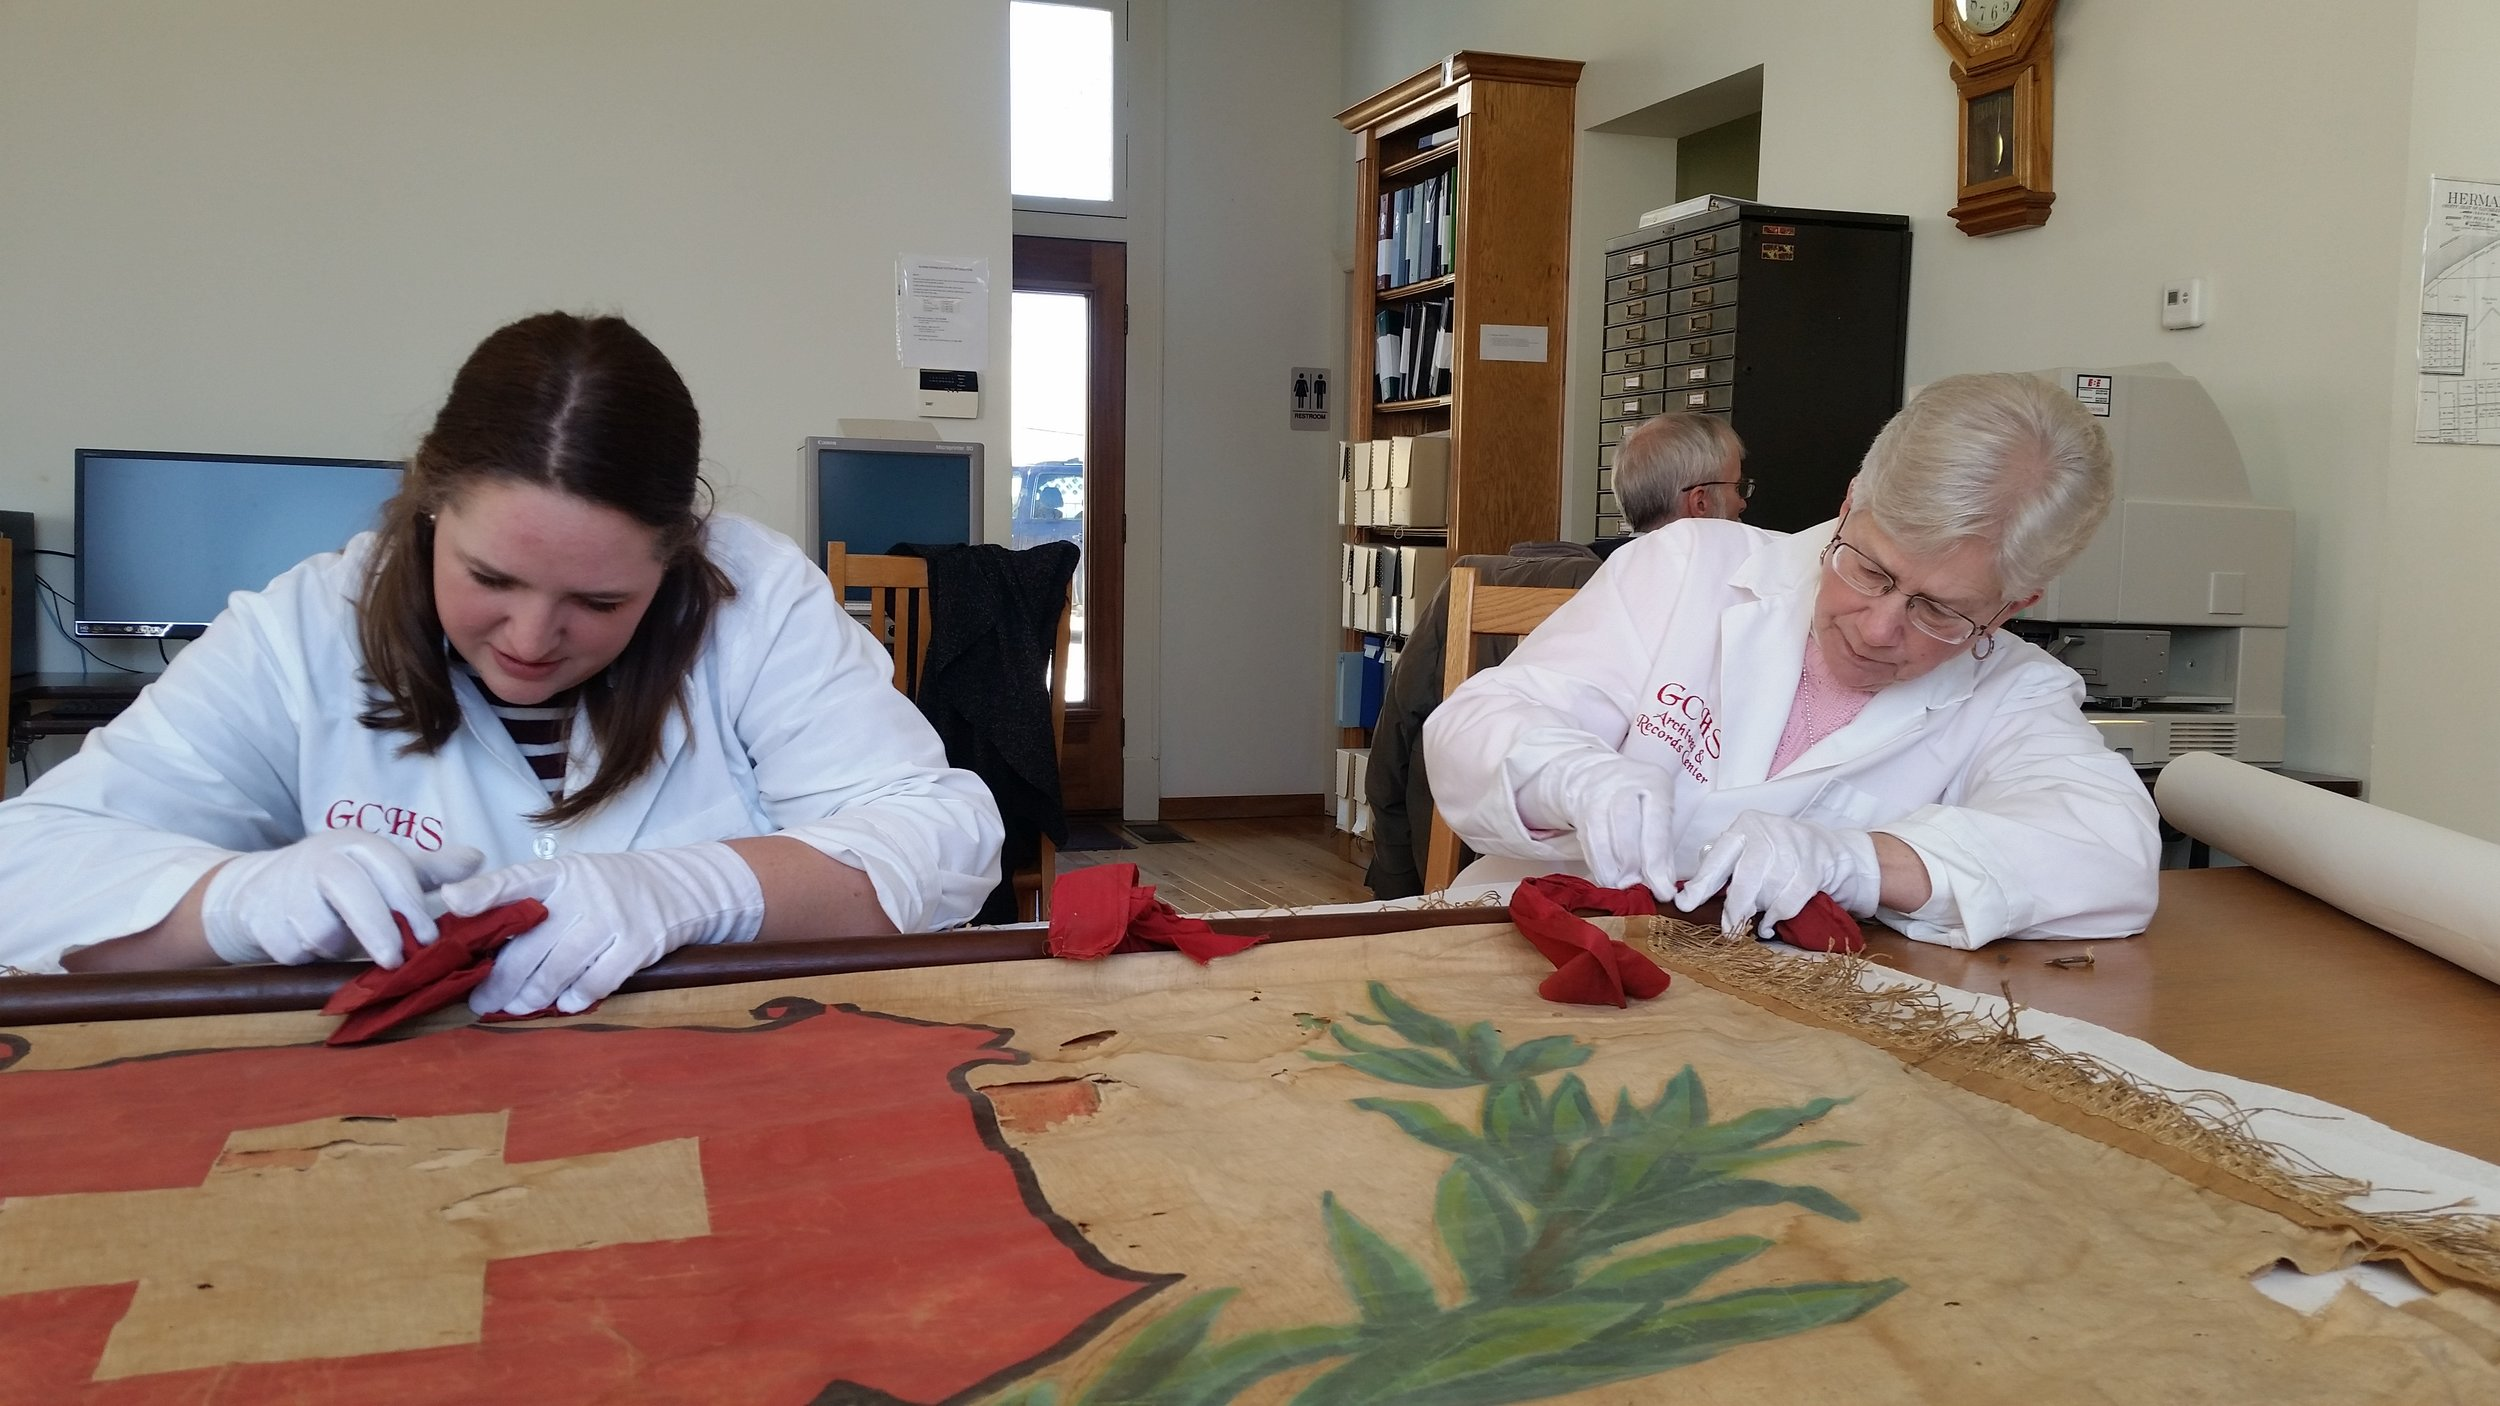 Kristy Goss (left) and Lois Kruse work on the old Swiss Society Helvetia banner that was recently discovered at the Courthouse in Hermann